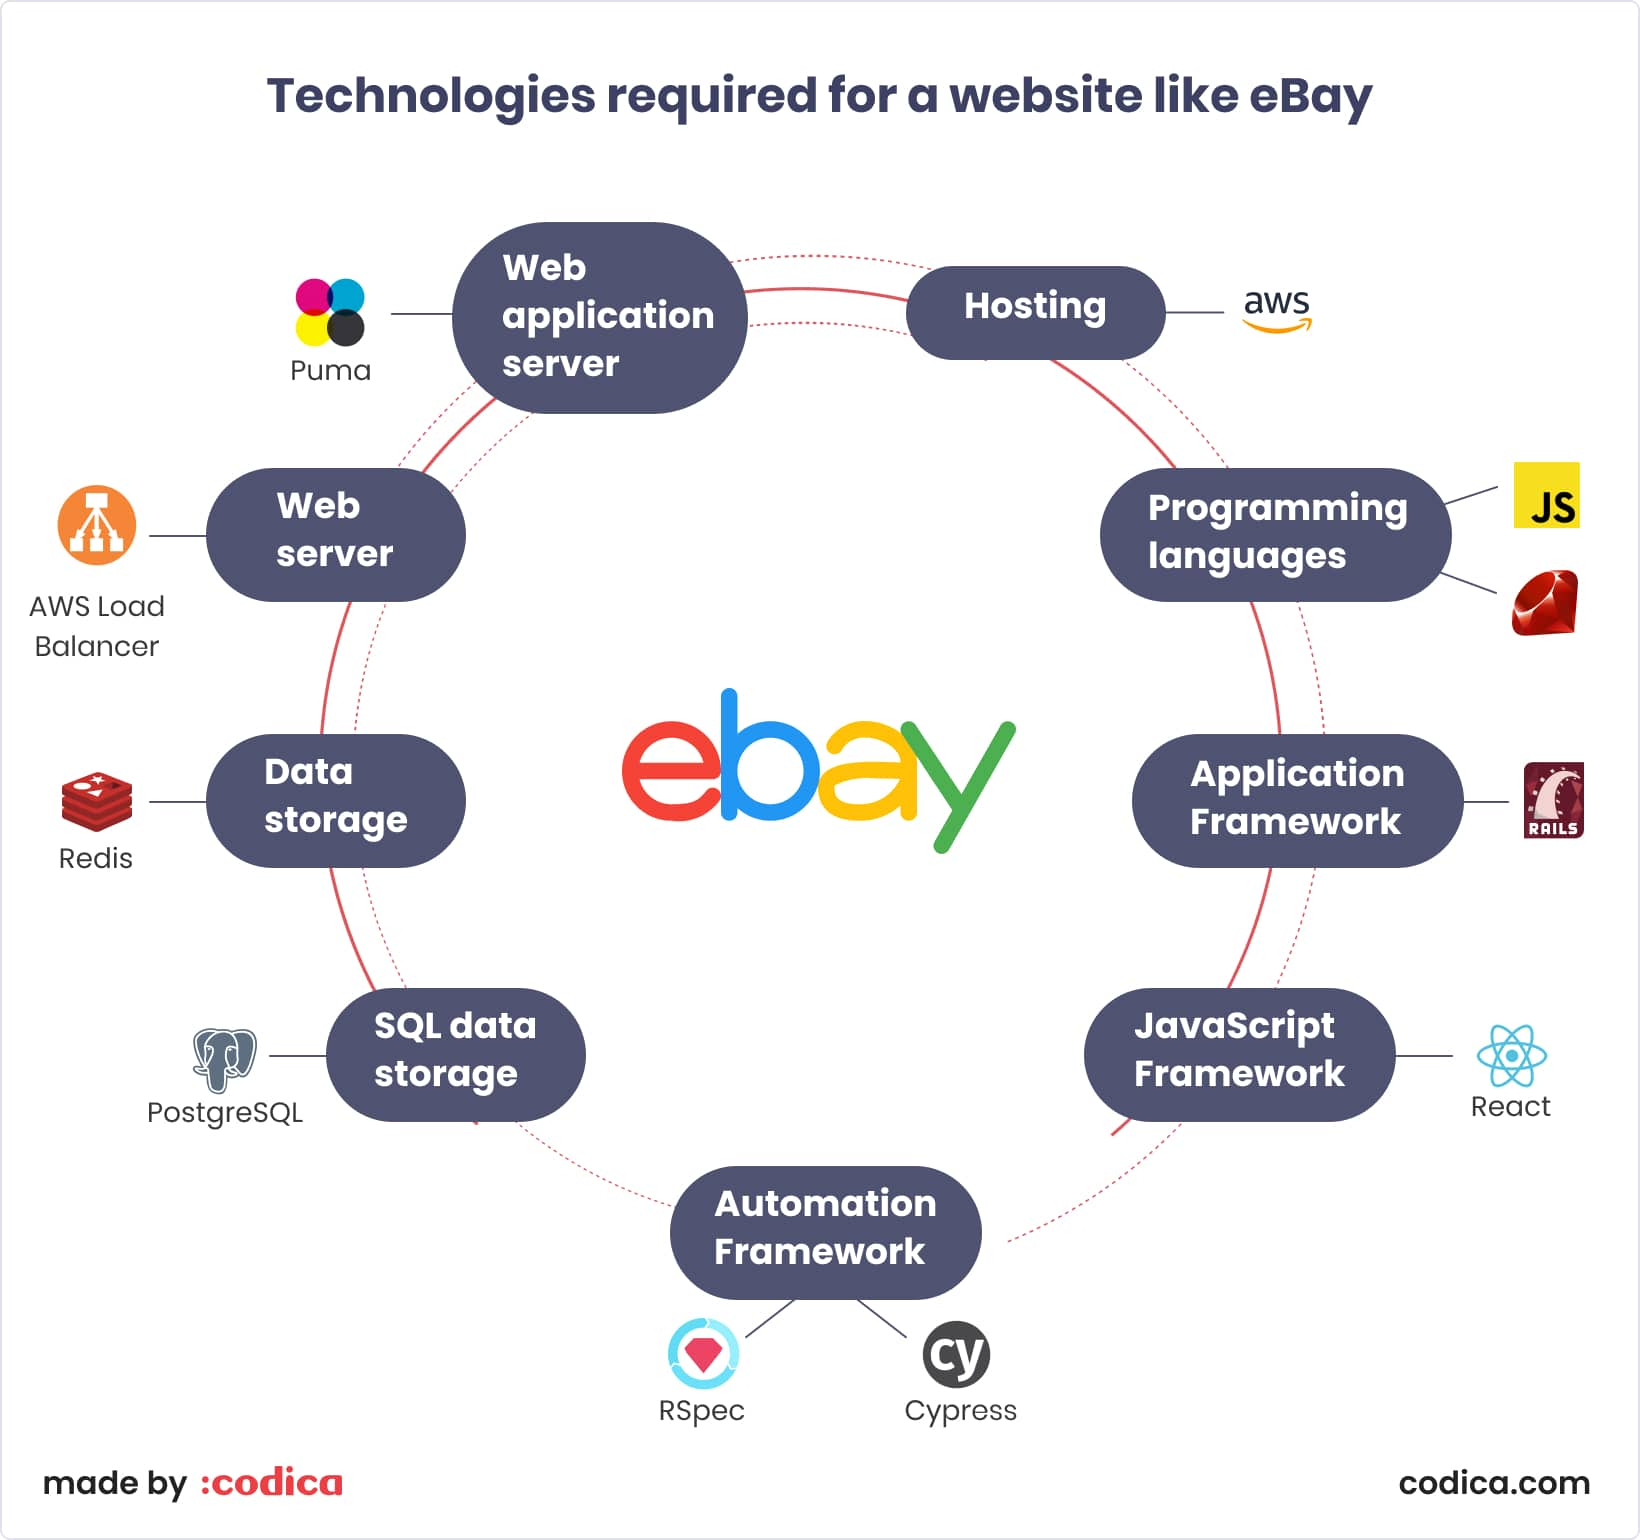 Technologies required for a website like eBay